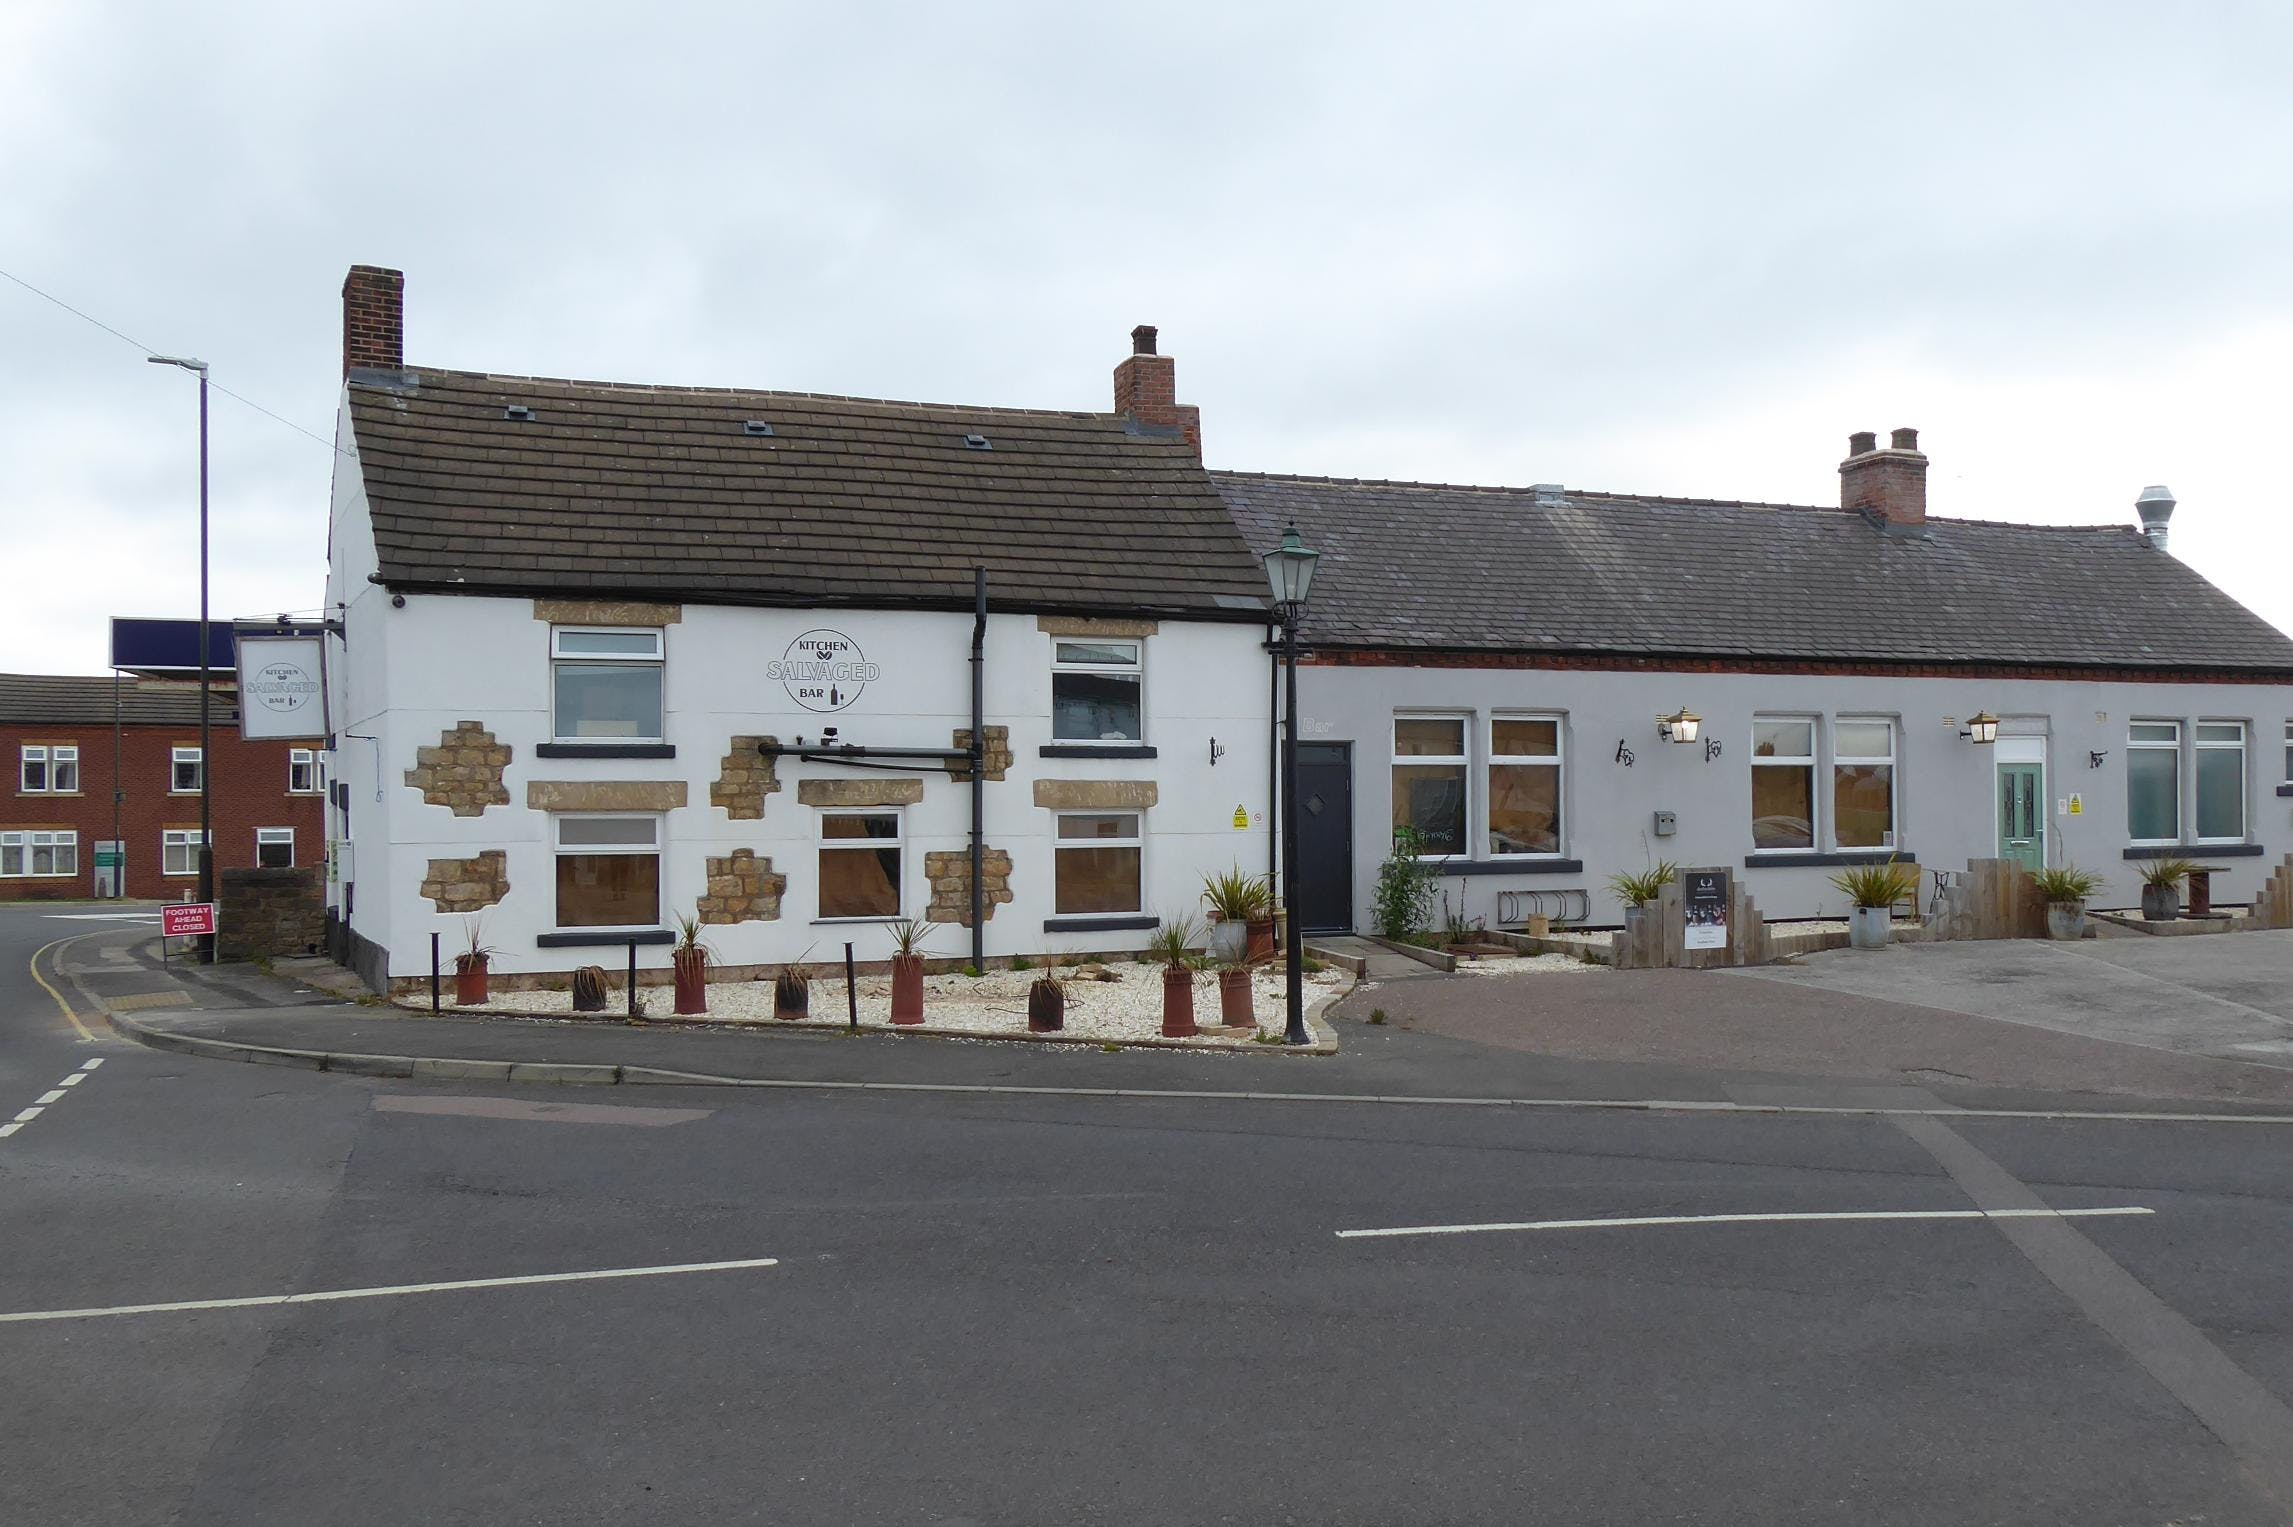 Salvaged Kitchen & Bar/former Crown Inn, Clowne, Restaurant / Development (Land & Buildings) For Sale - P1030798.JPG